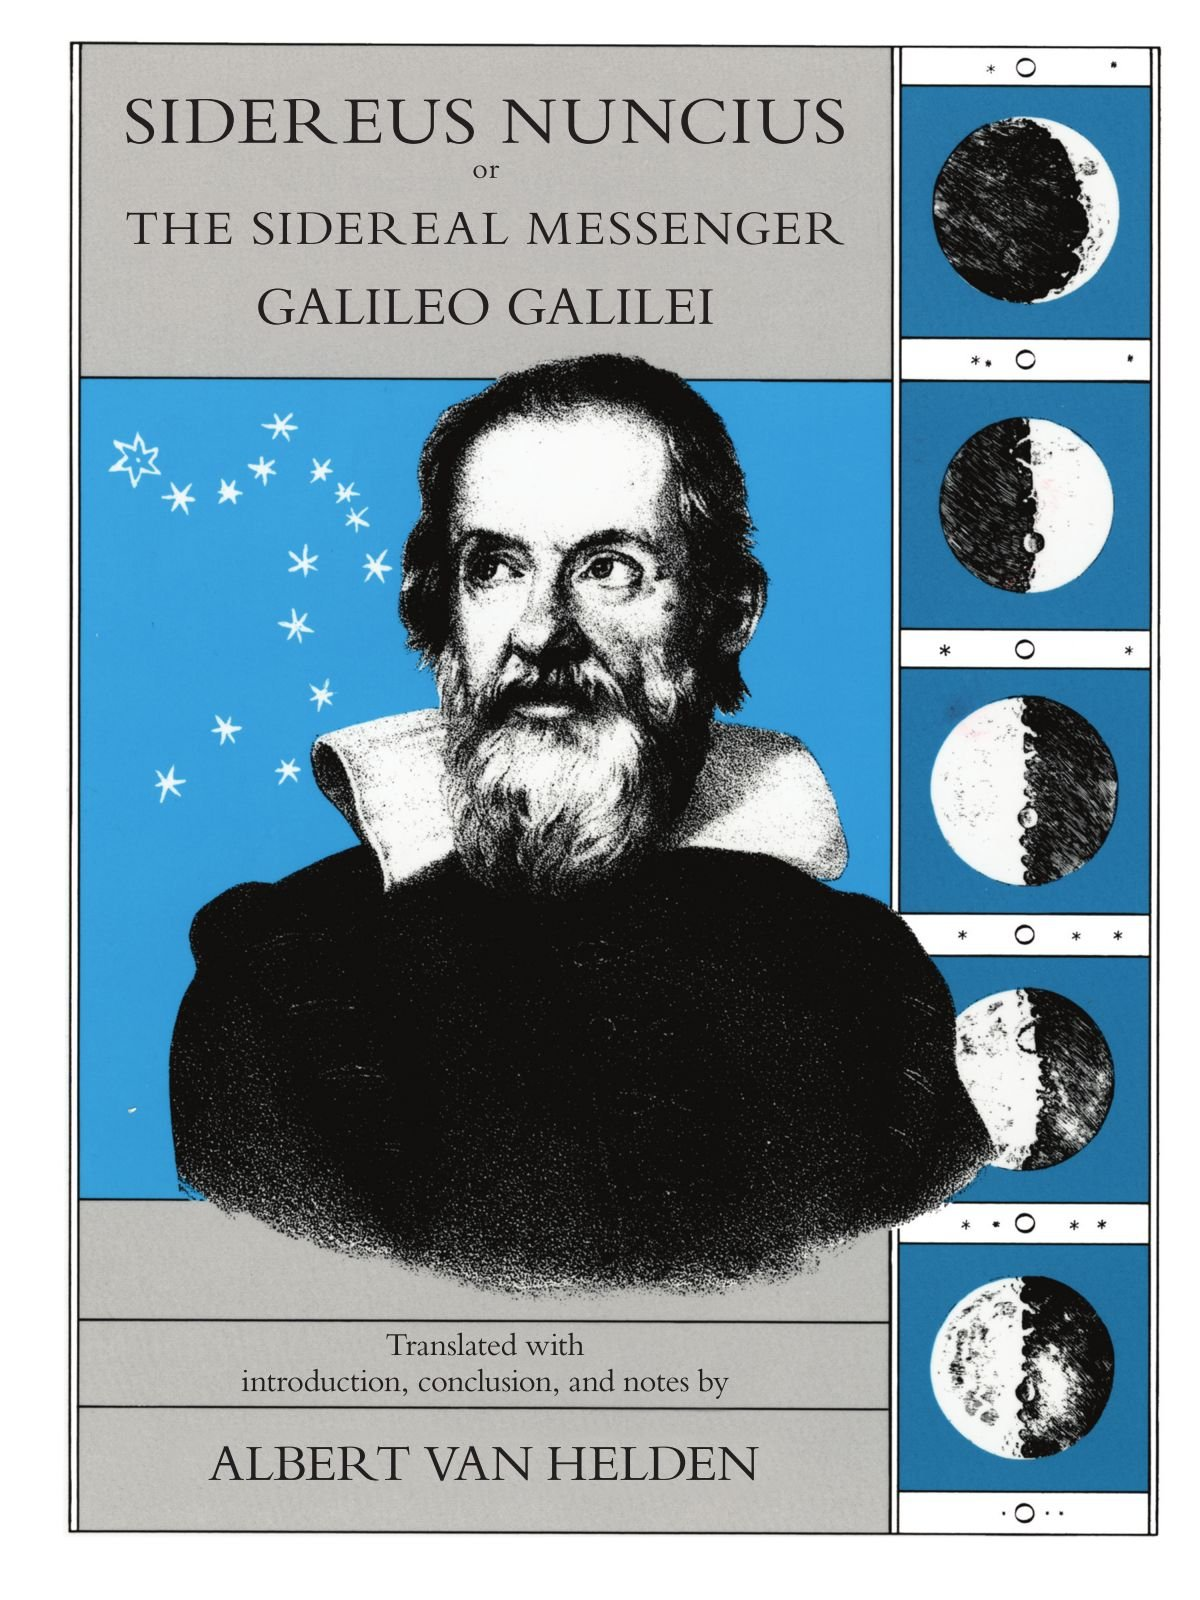 sidereus nuncius or the sidereal messenger amazon co uk galileo sidereus nuncius or the sidereal messenger amazon co uk galileo galilei albert van helden 9780226279039 books